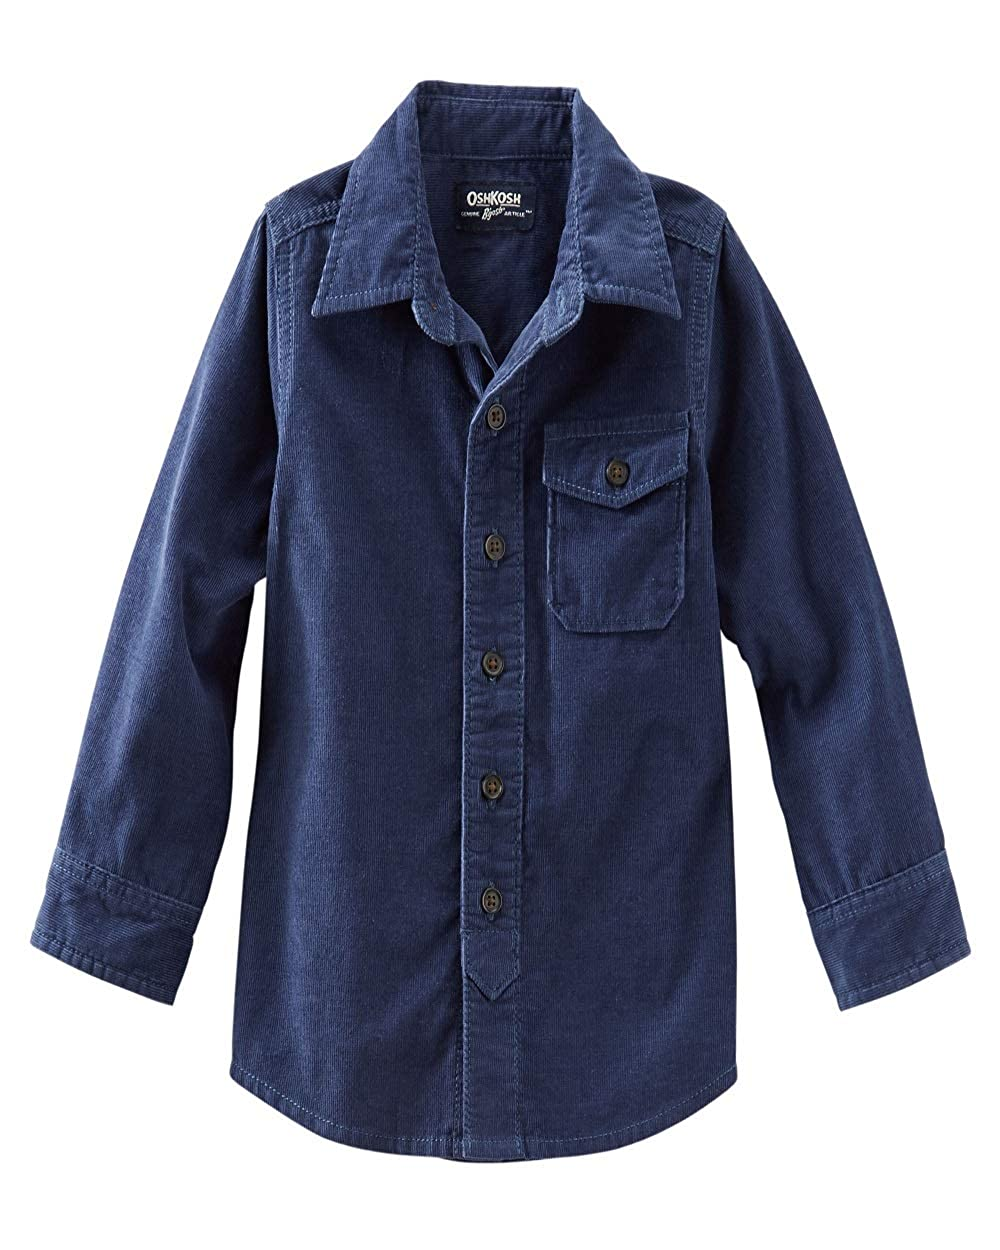 OshKosh Bgosh Button Front Corduroy Shirt Navy Blue 7 Youth